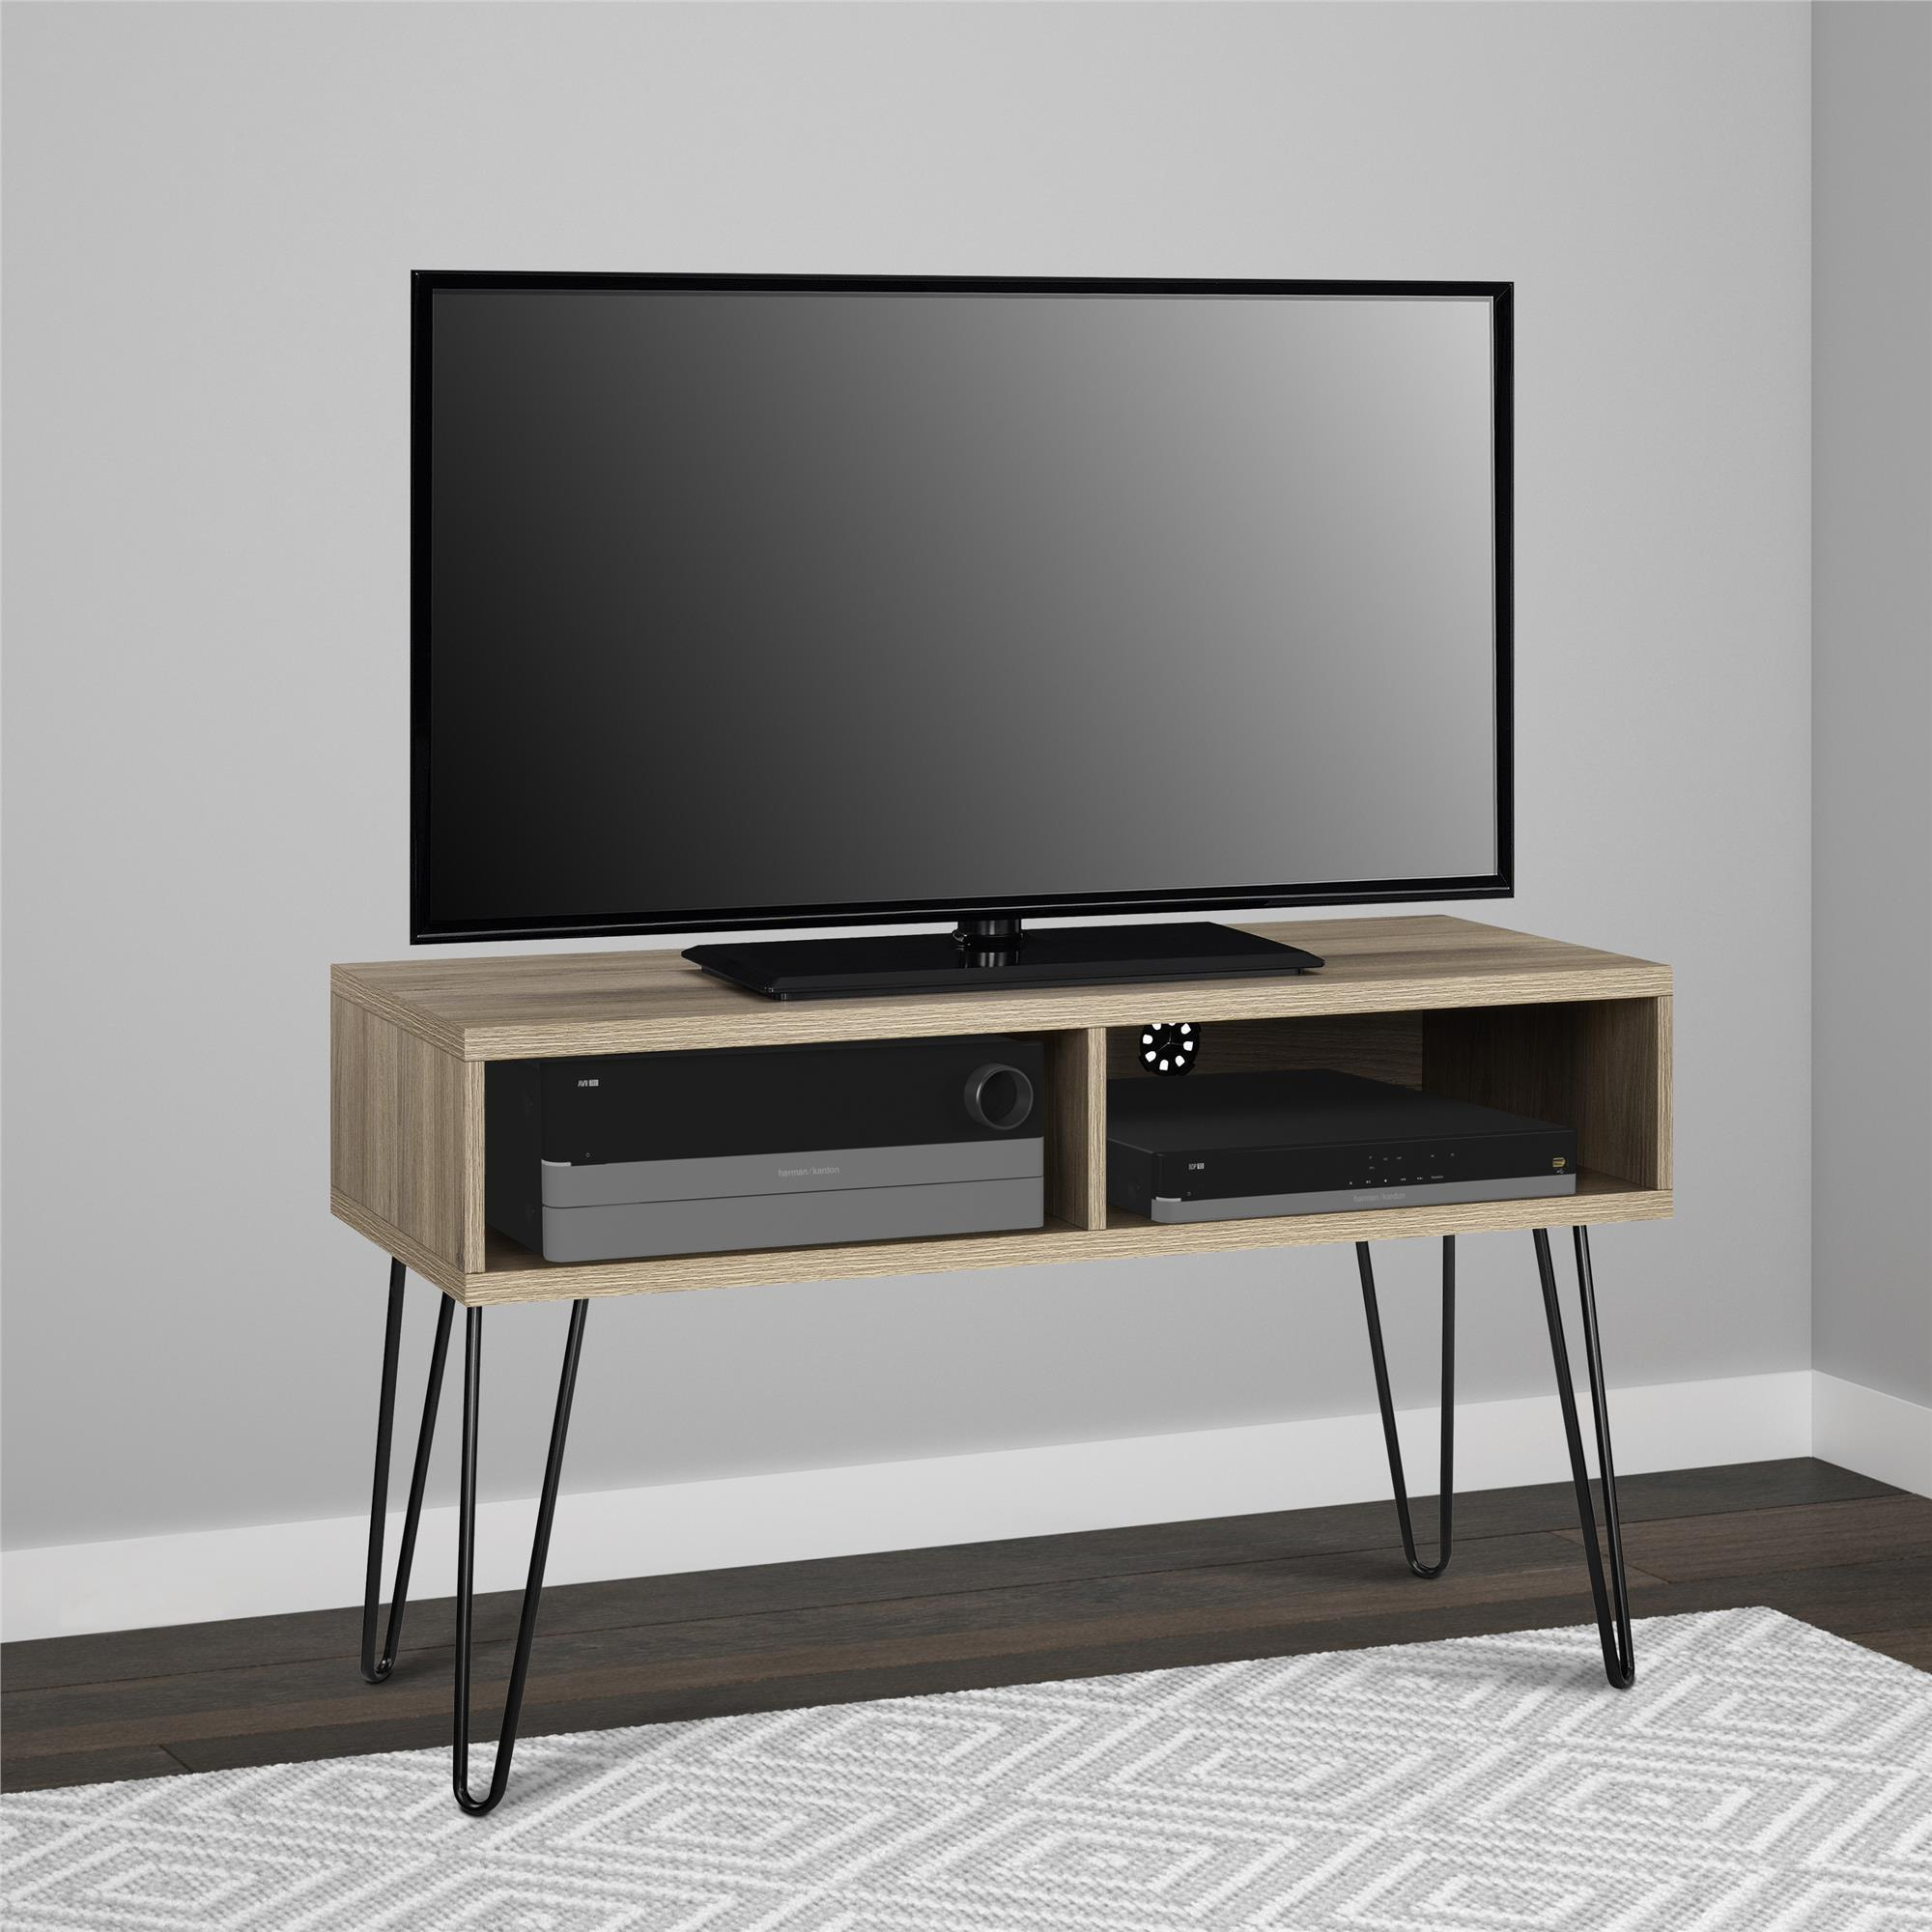 Avenue Greene Isaac Retro Tv Stand For Tvs Up To 42 Inches